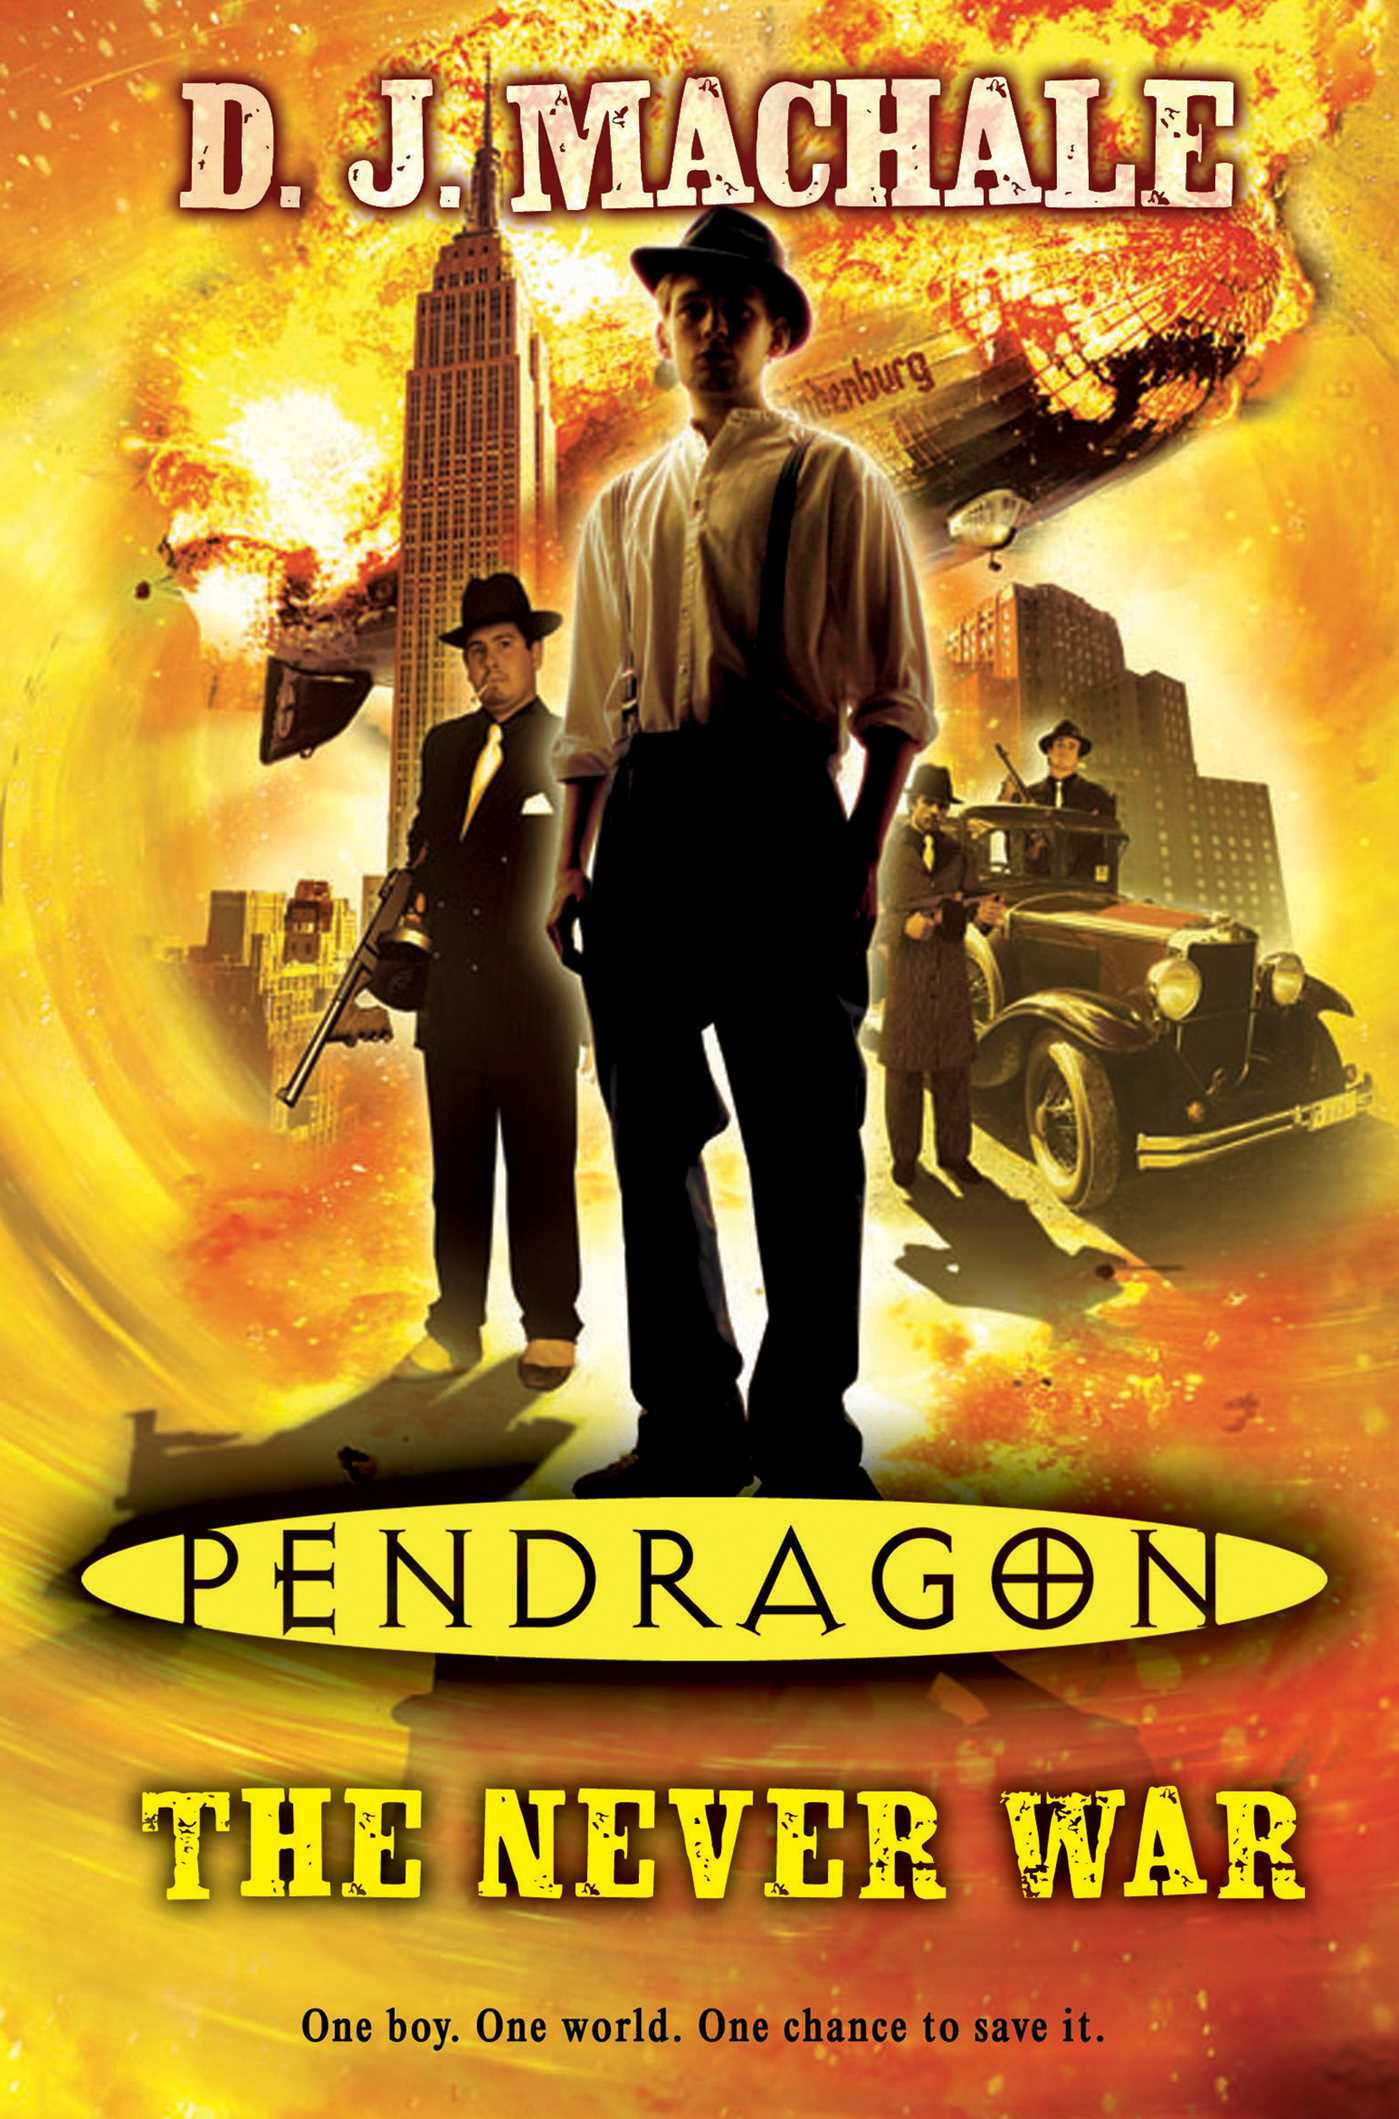 PENDRAGON-THE NEVER WAR.PDF EBOOK